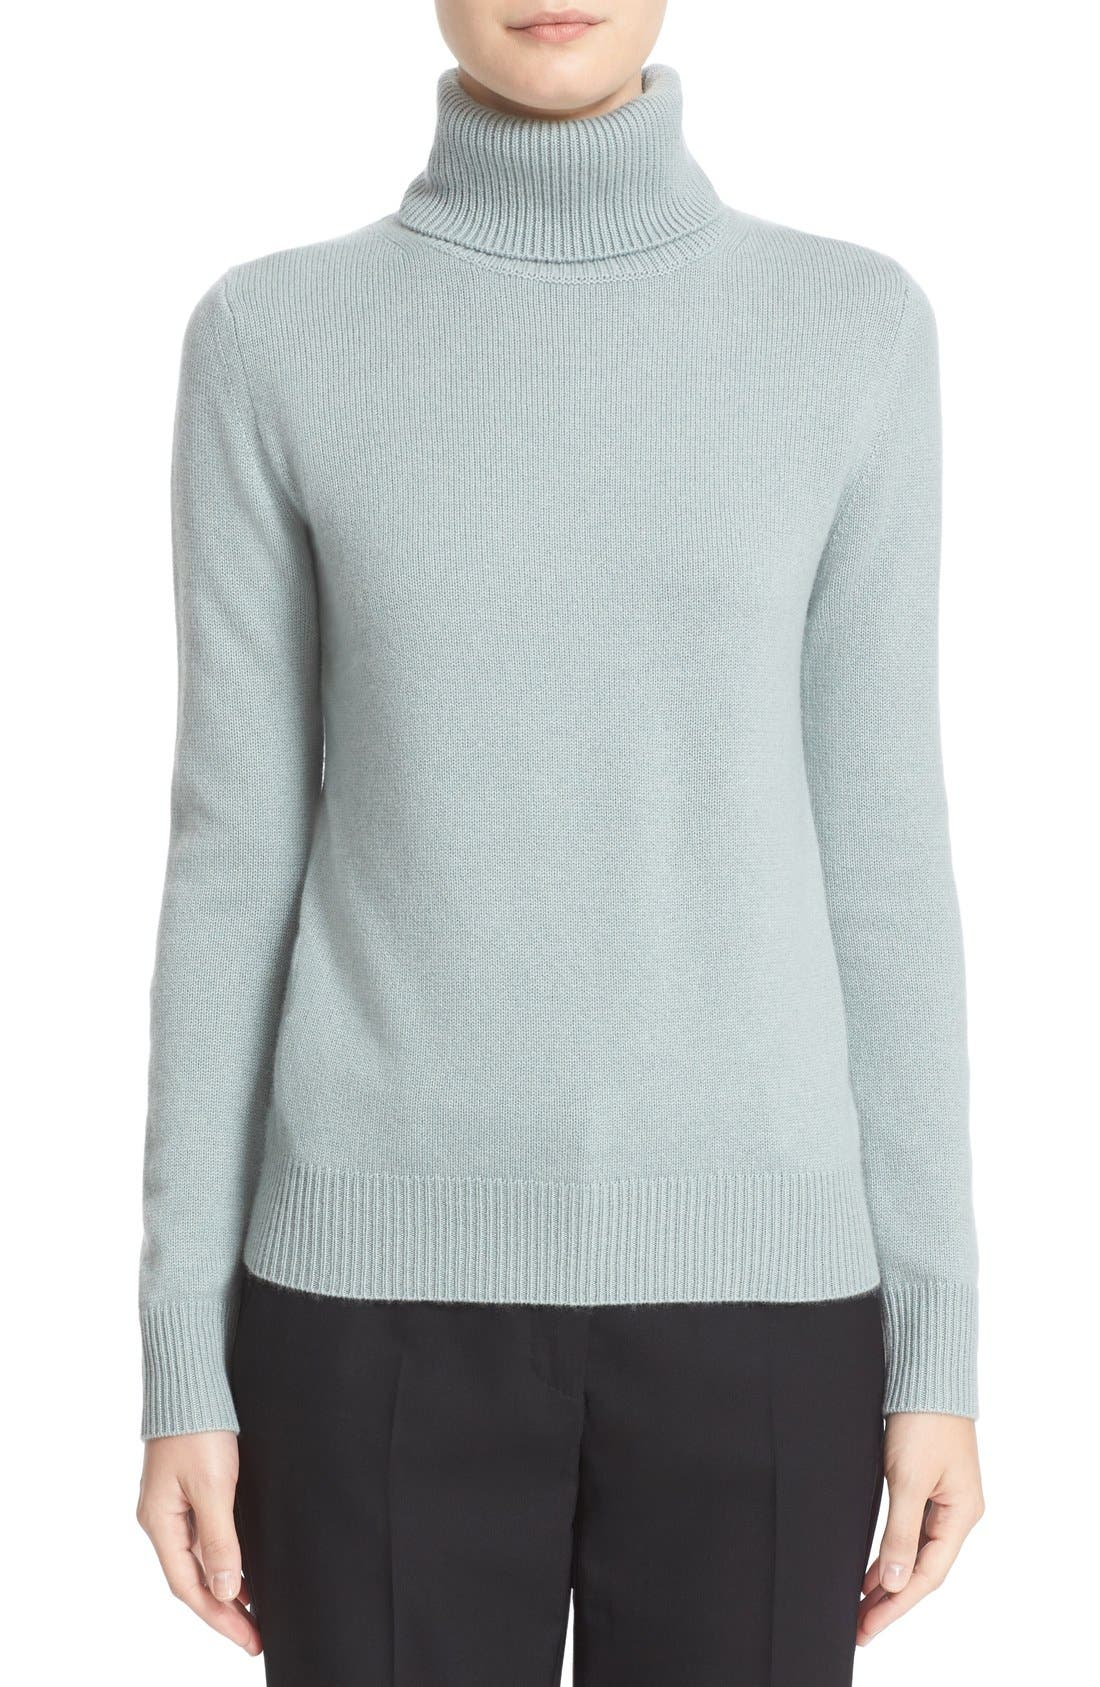 CHLOÉ Knit Turtleneck Cashmere Sweater